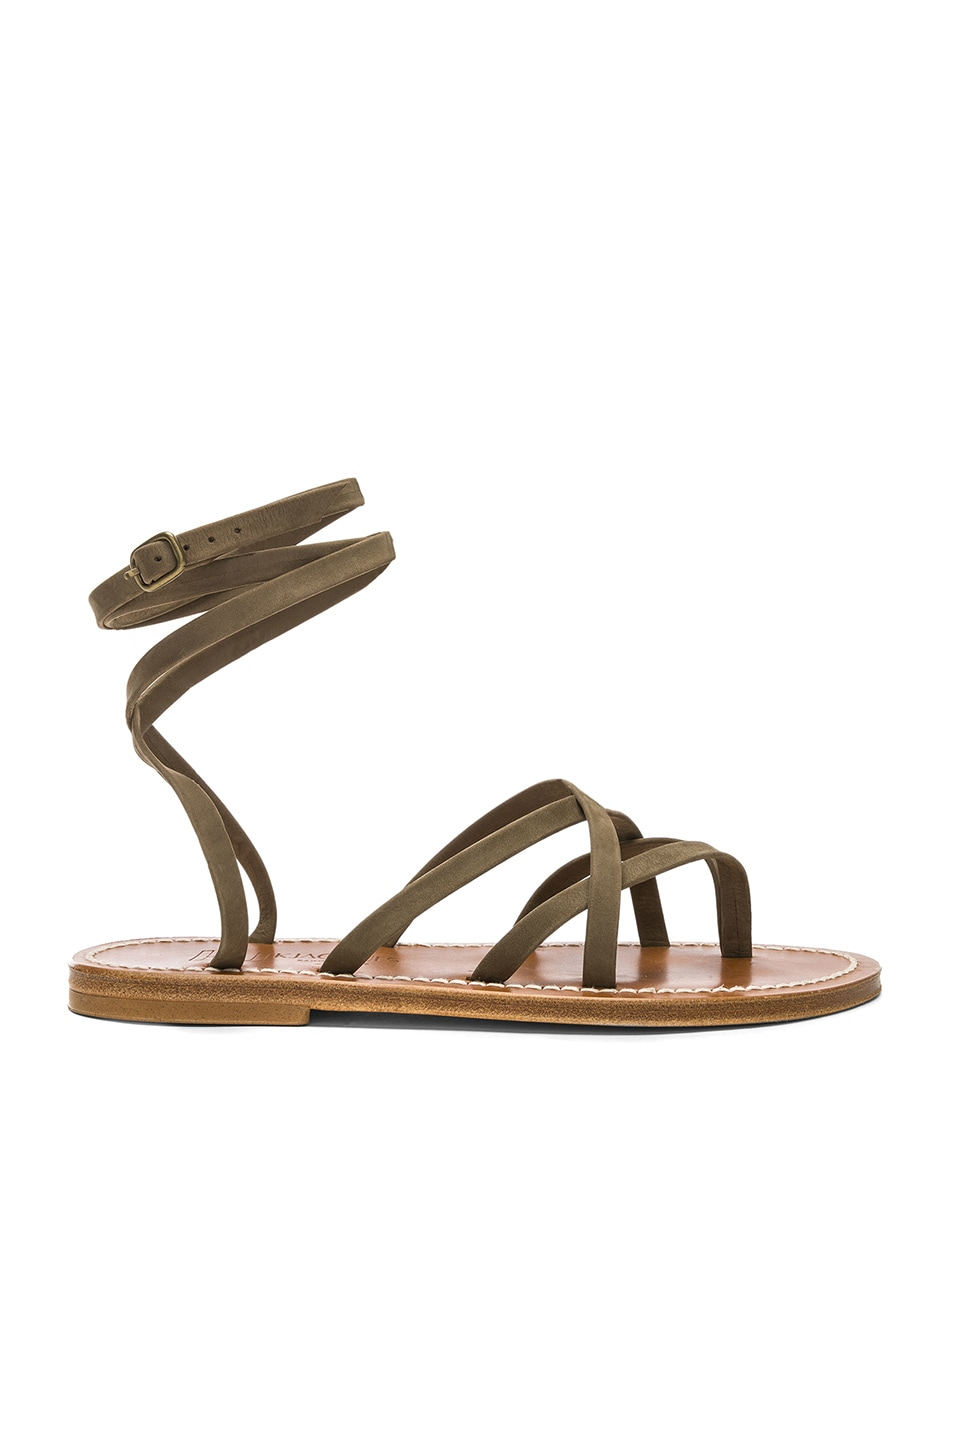 Image 1 of K Jacques Zenobie Sandal in Nubuck Kaki